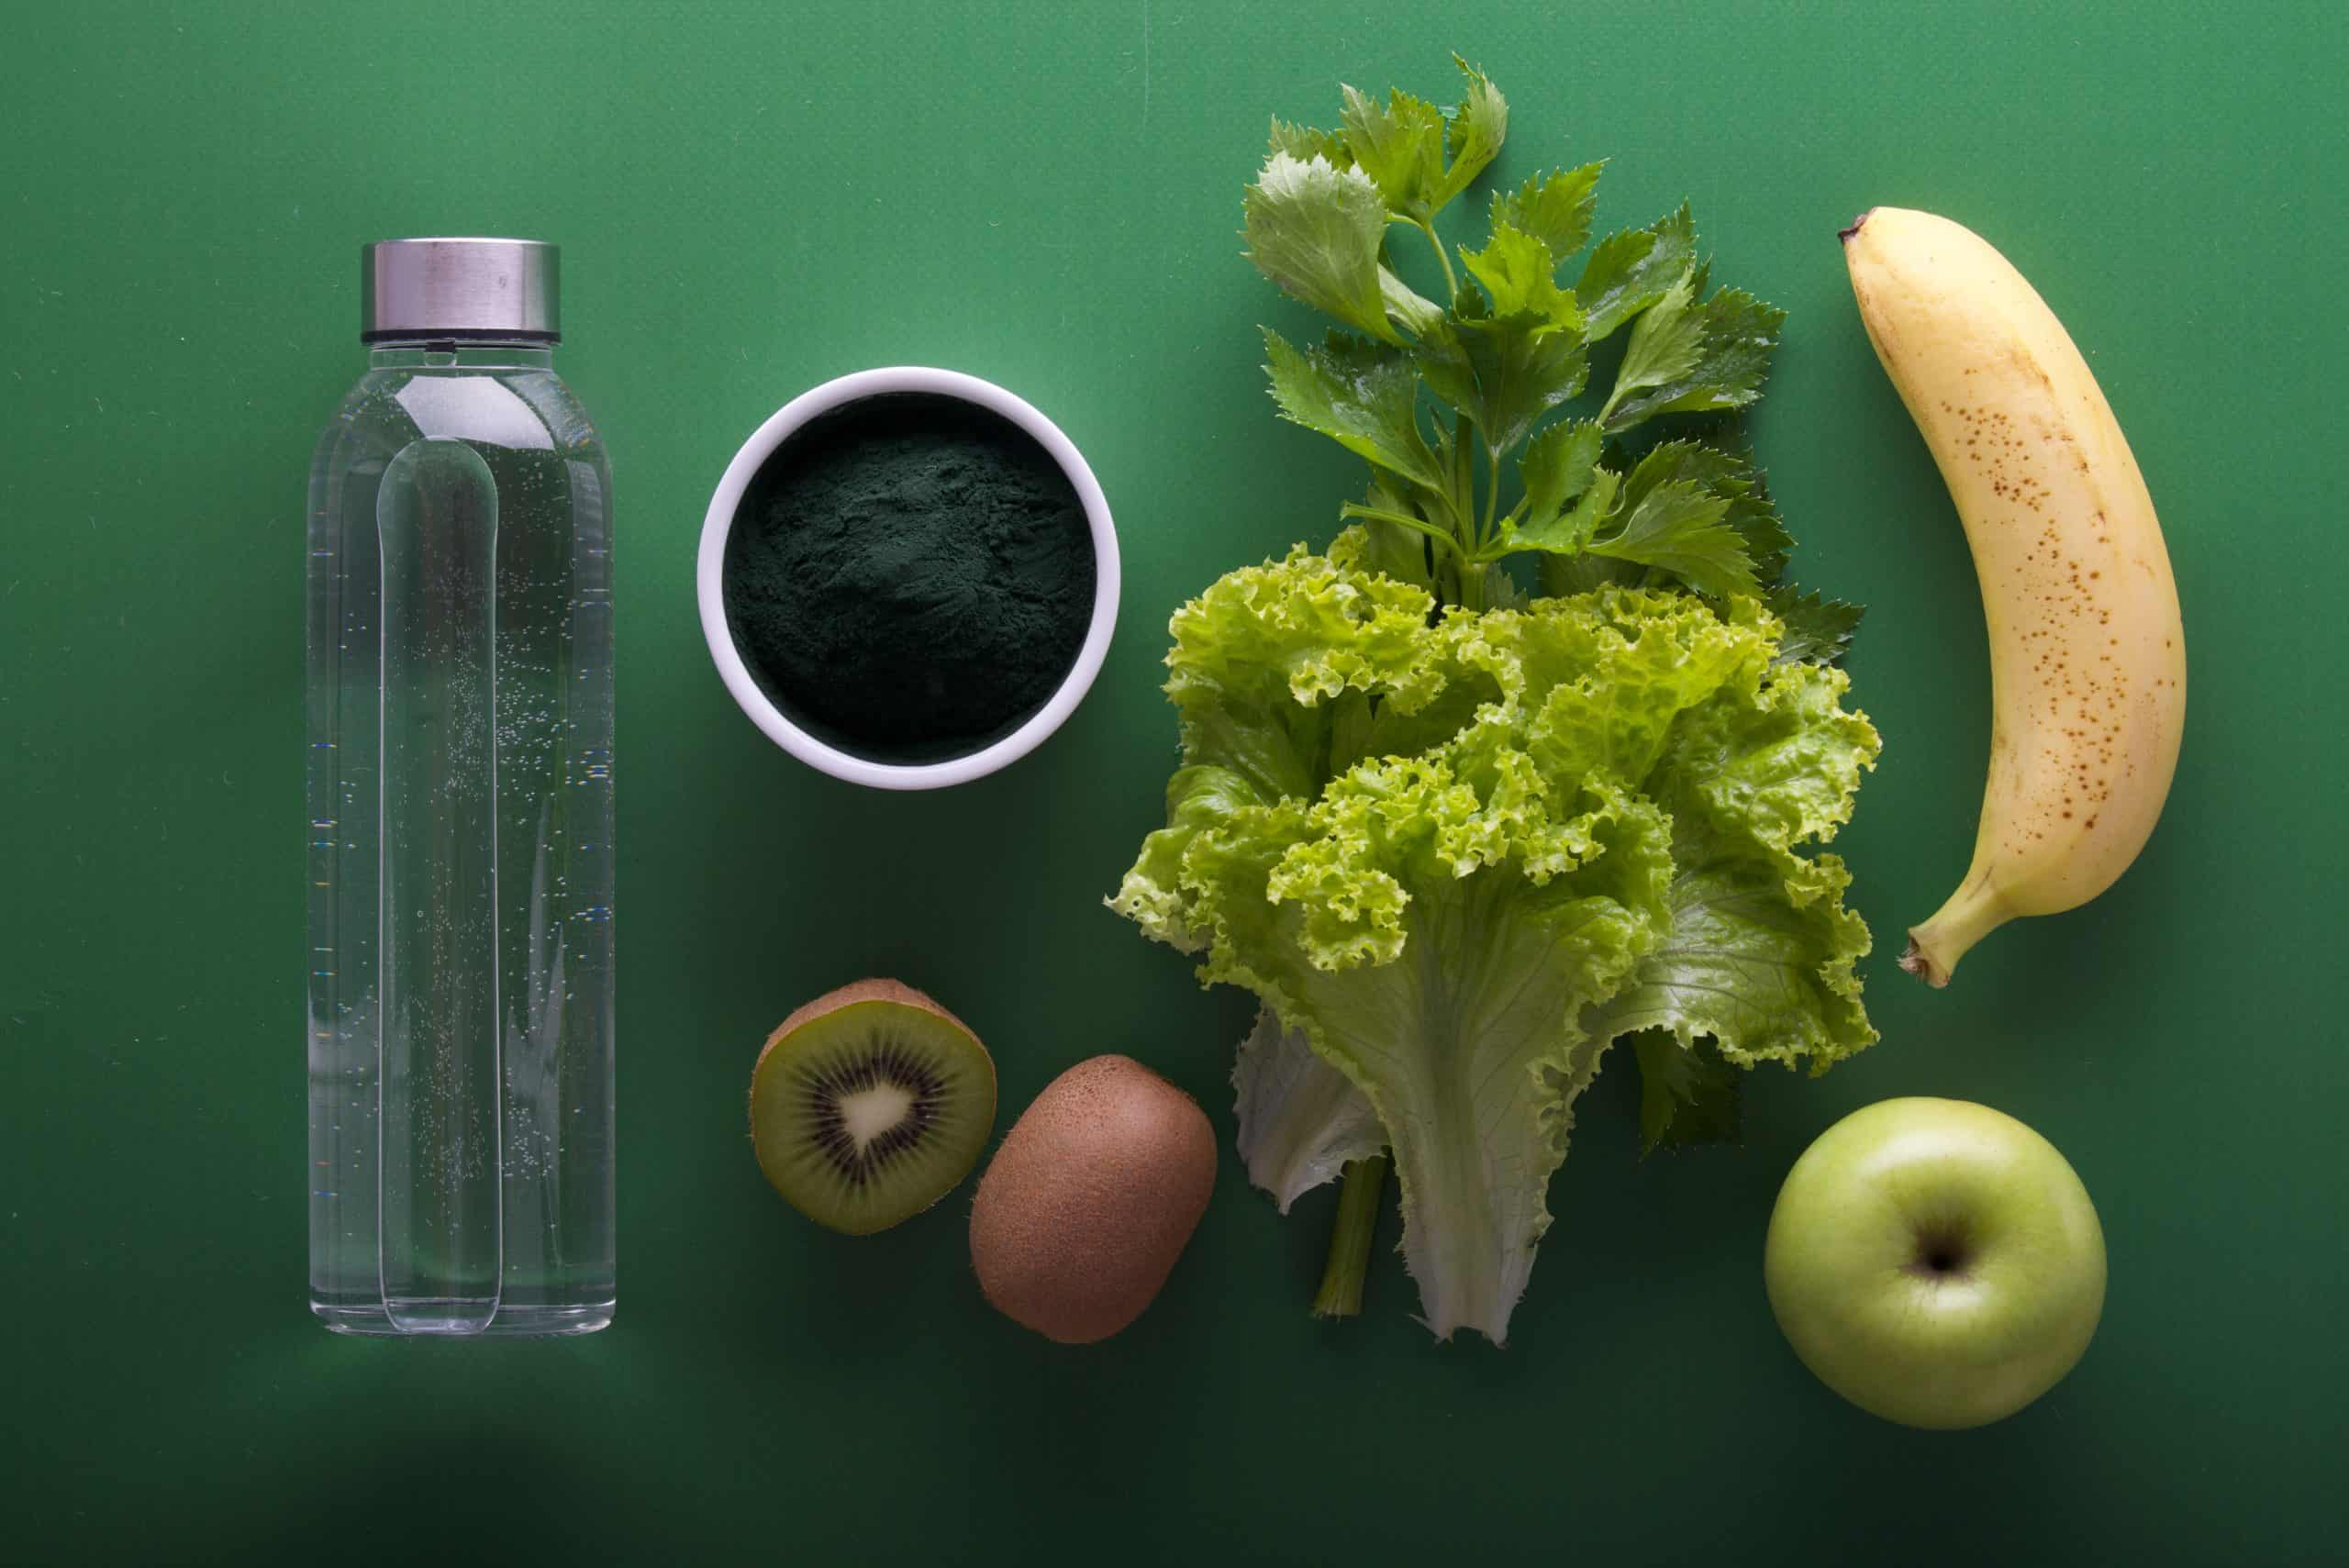 Organic And Natural: Healthy Lifestyle